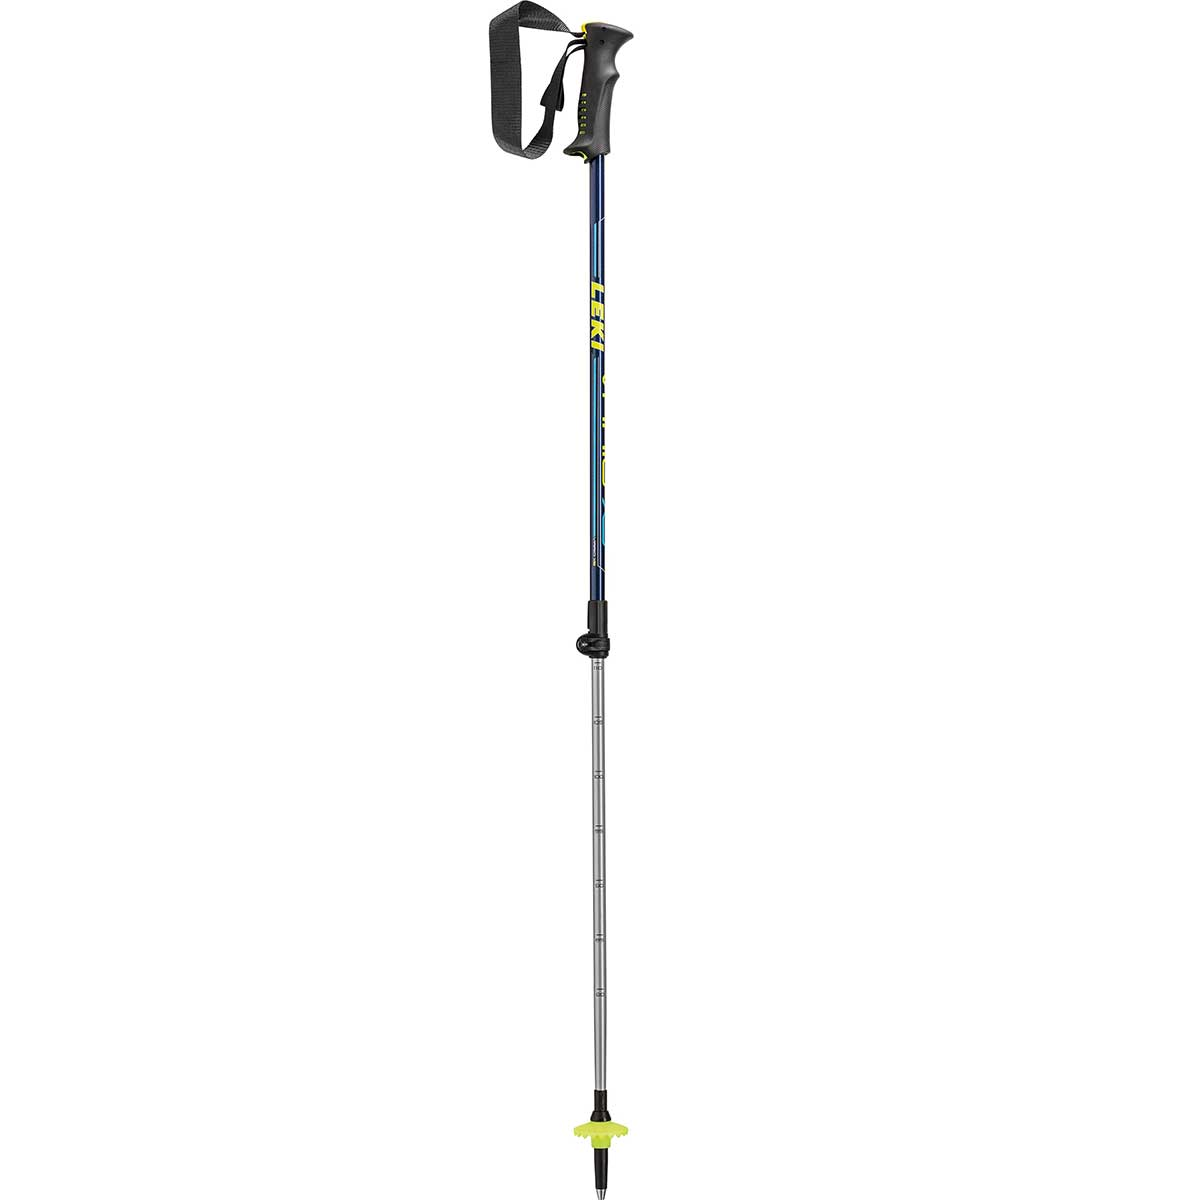 Leki Vario XS kids' ski pole in blue and lime green